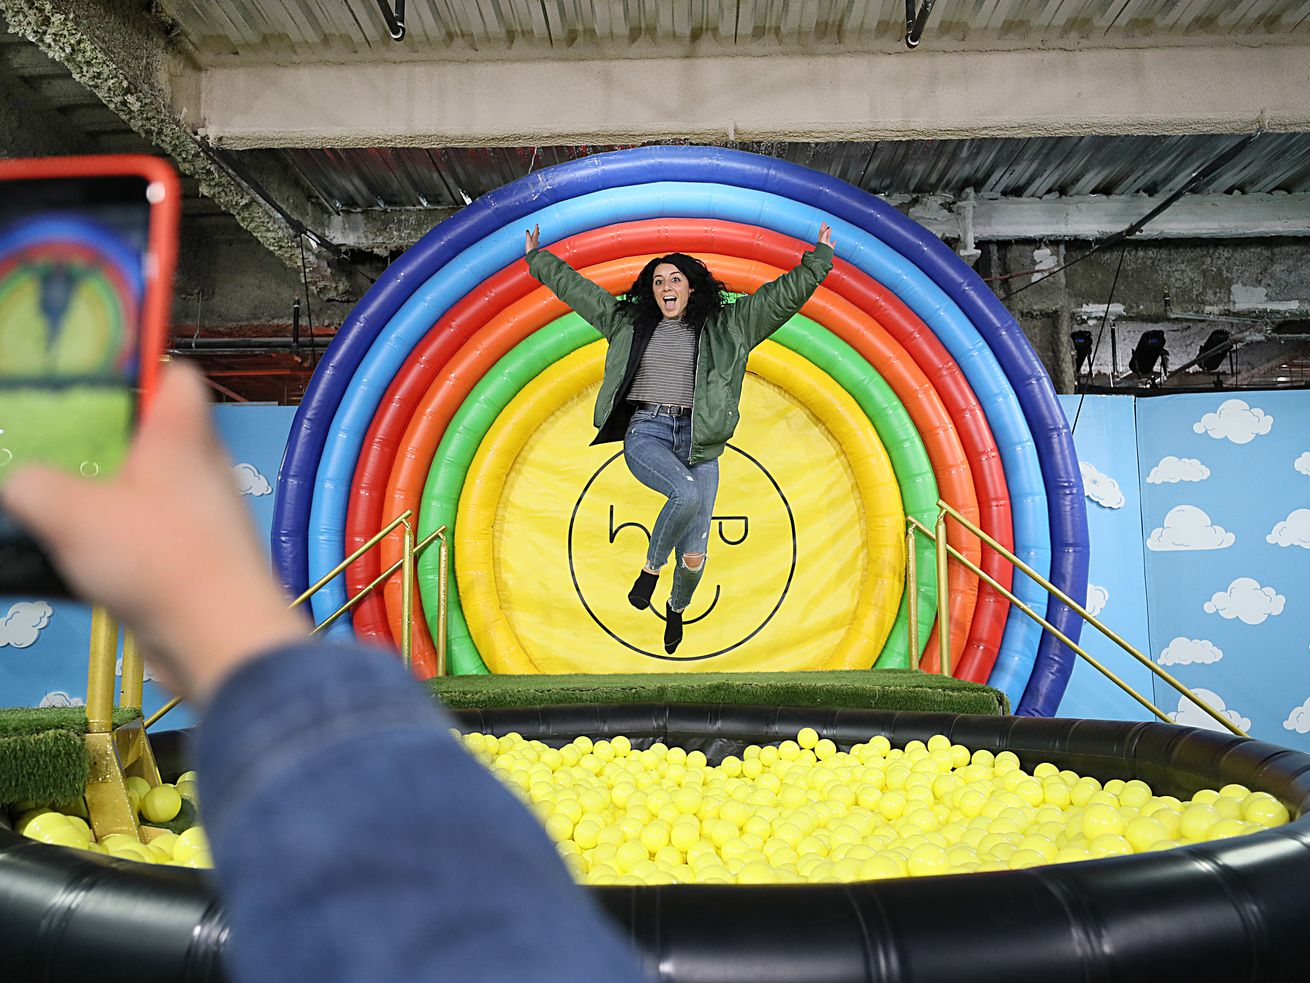 A young woman jumps into a ball pit in front of a rainbow bulls-eye design.